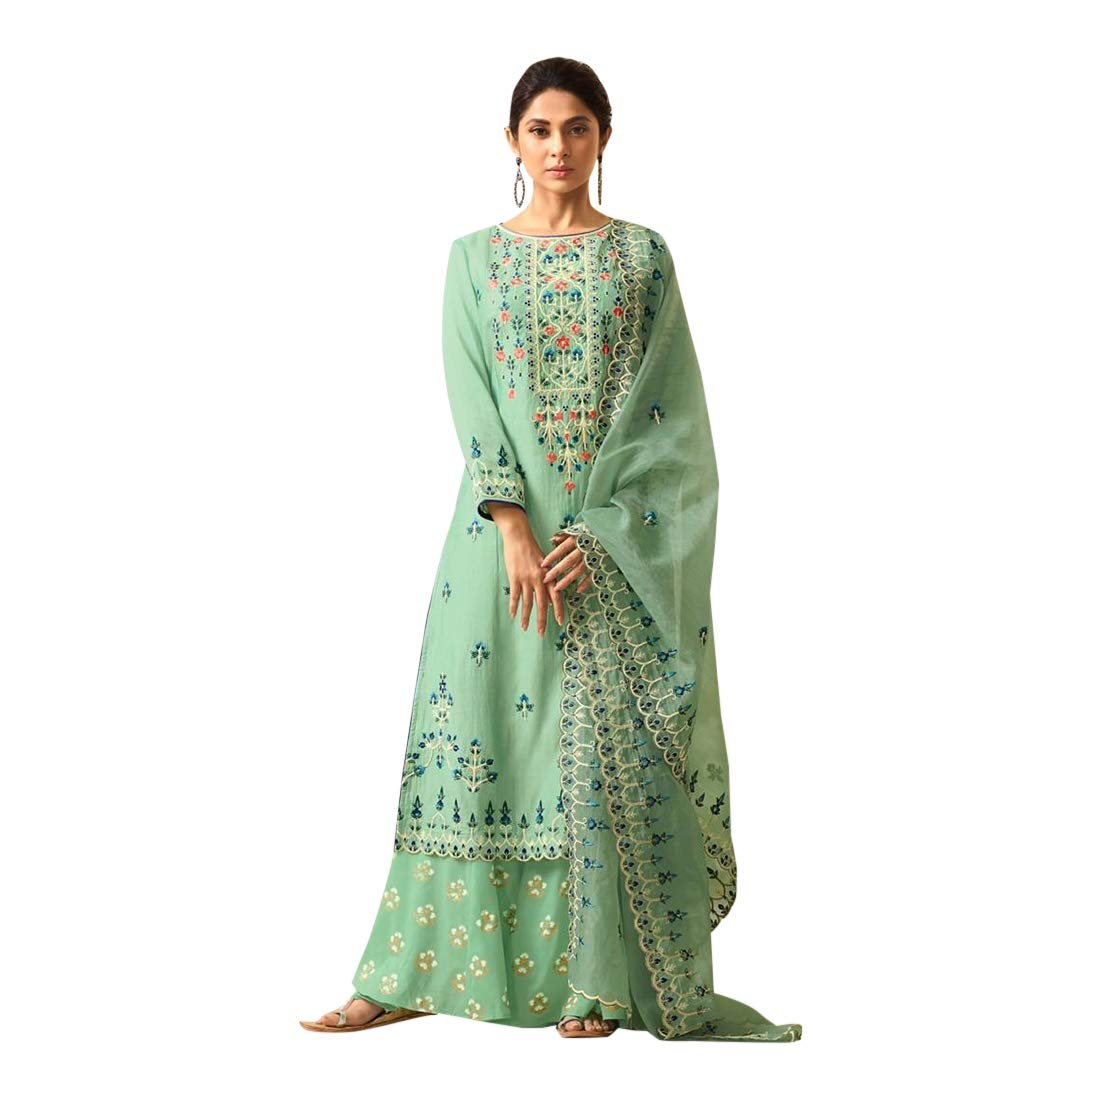 Indian Ethnic Party Wear Long Salwar Kameez Suit Ready To Wear Collection 7353 S1 1